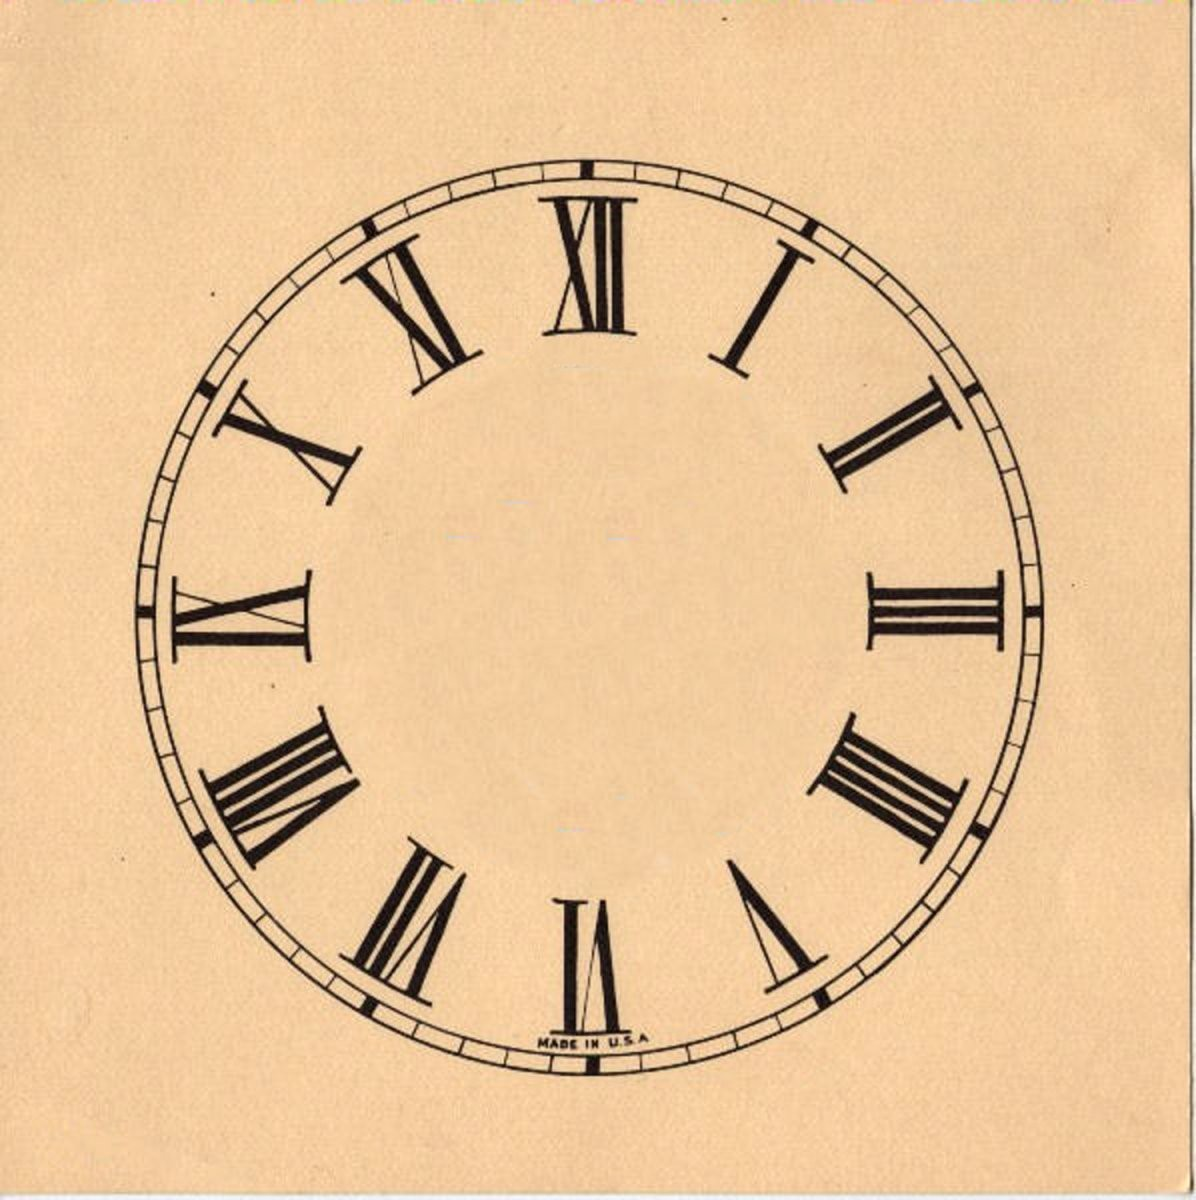 11 Clock Face Images  Print Your Own  The Graphics Fairy von Make Your Own Clock Photo